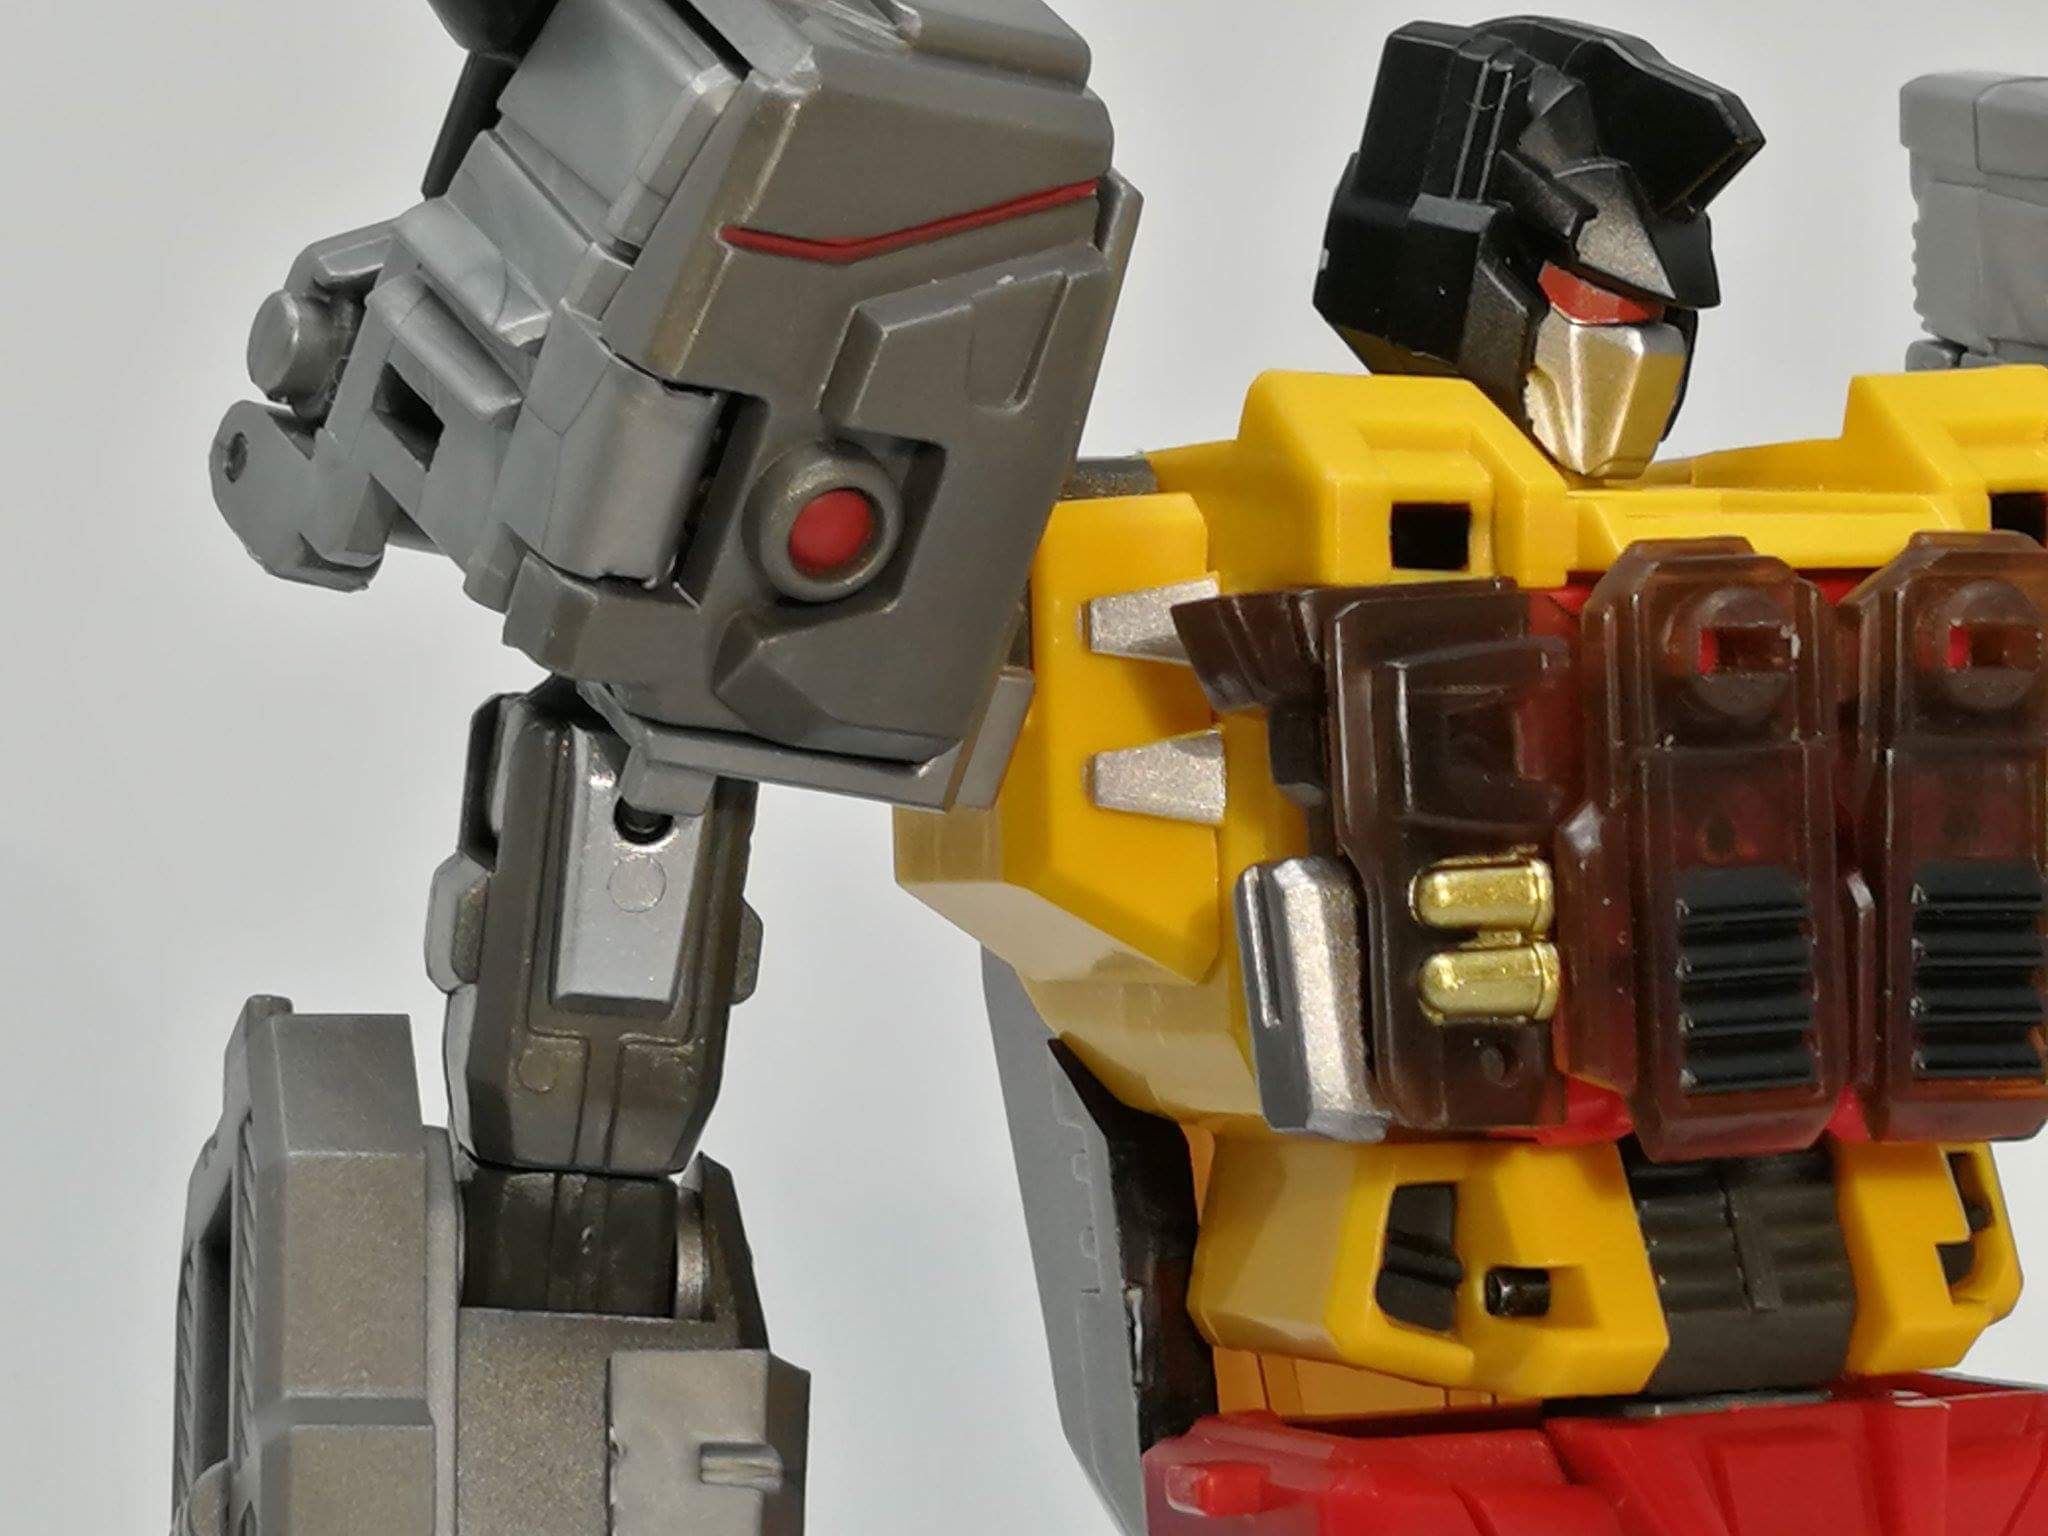 [FansProject] Produit Tiers - Jouets LER (Lost Exo Realm) - aka Dinobots - Page 3 QQu3tccm_o